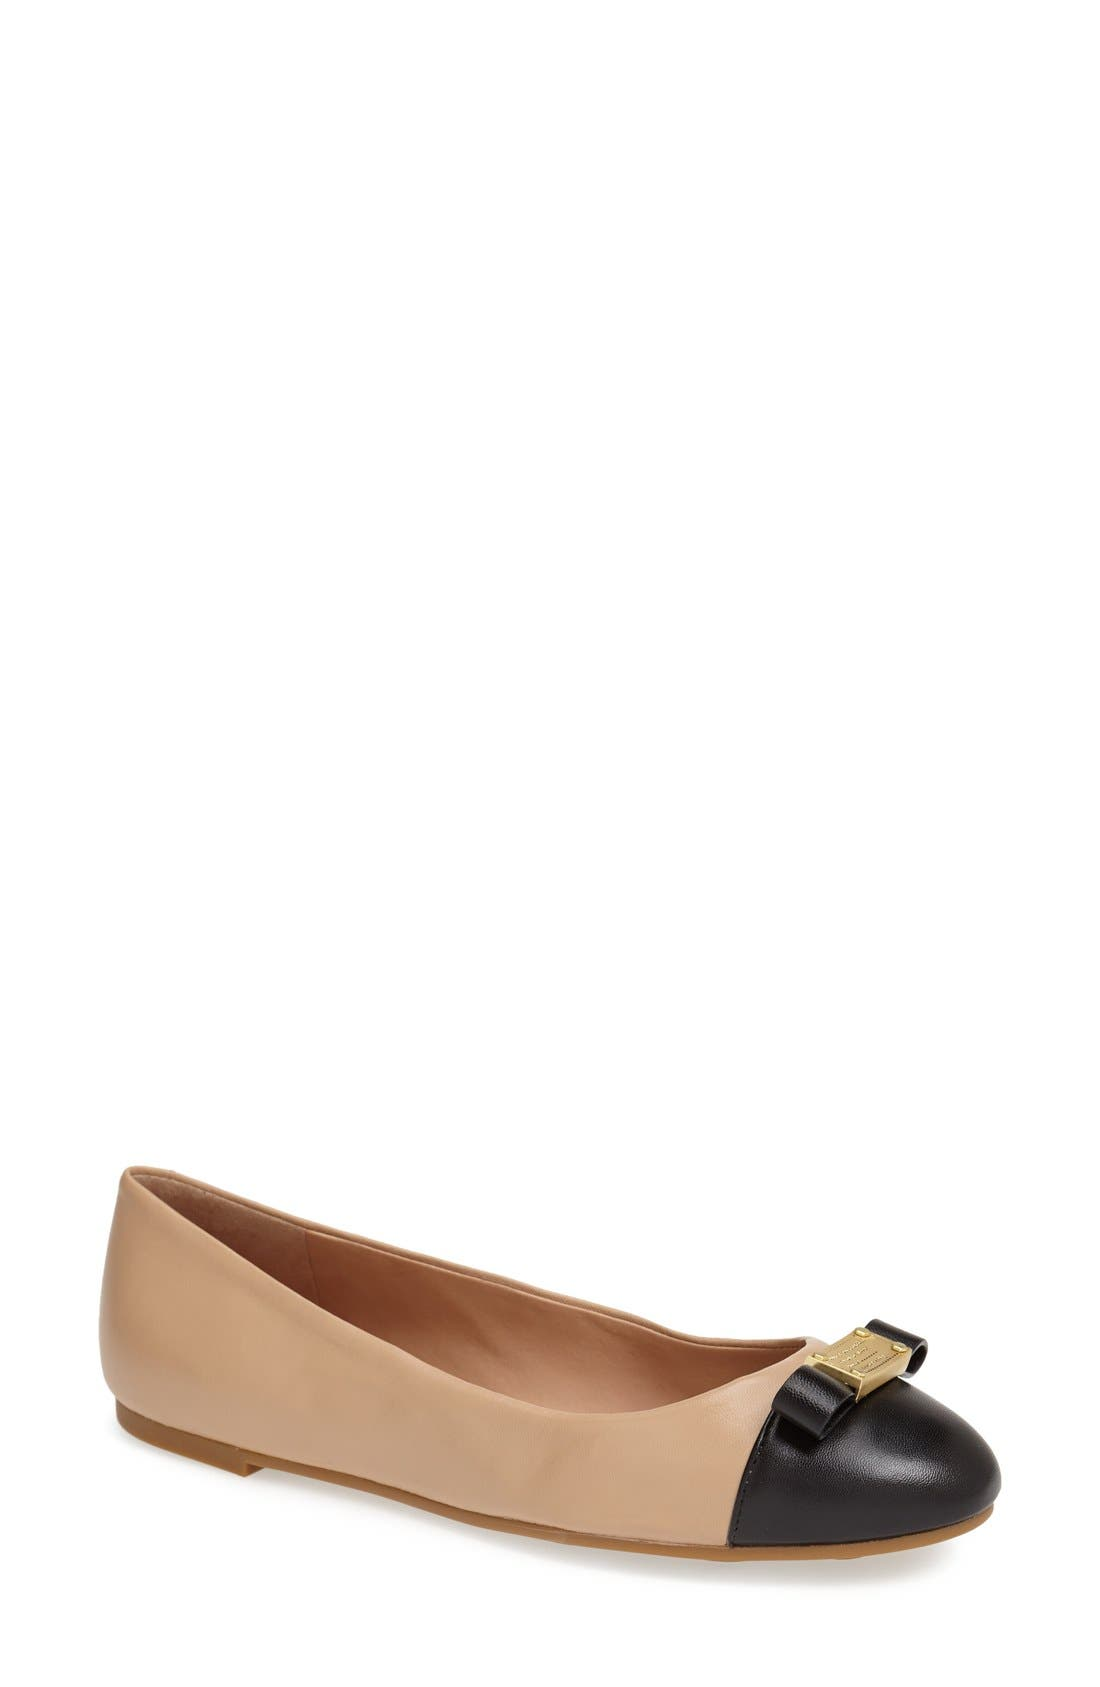 Main Image - MARC BY MARC JACOBS Cap Toe Ballet Flat (Women)